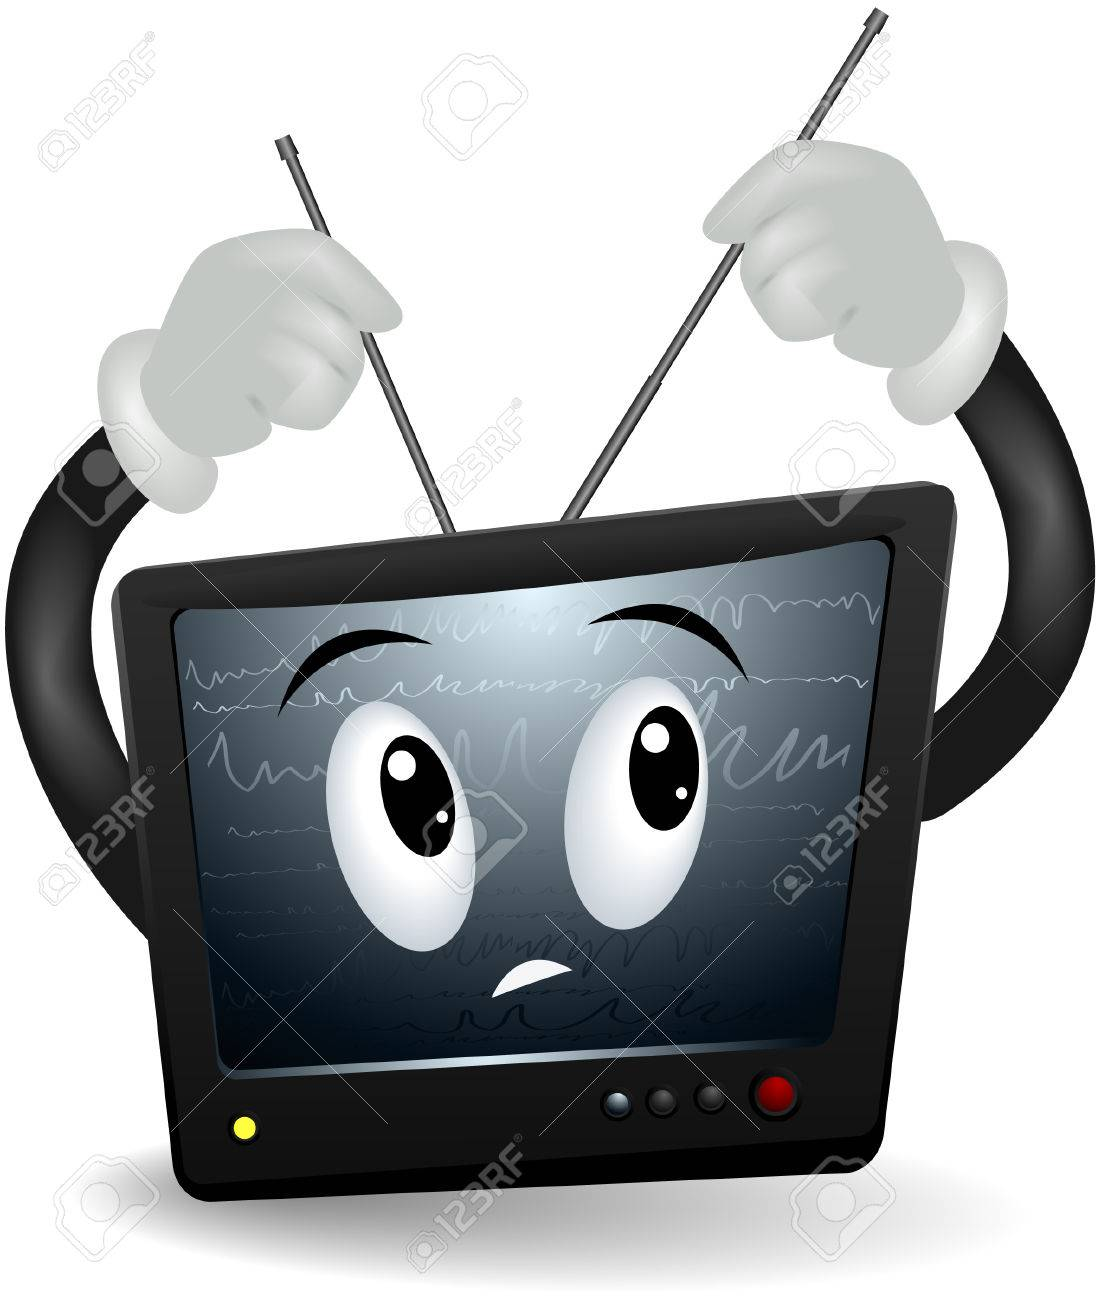 Television Looking for Signal with clipping path Stock Vector - 5171856